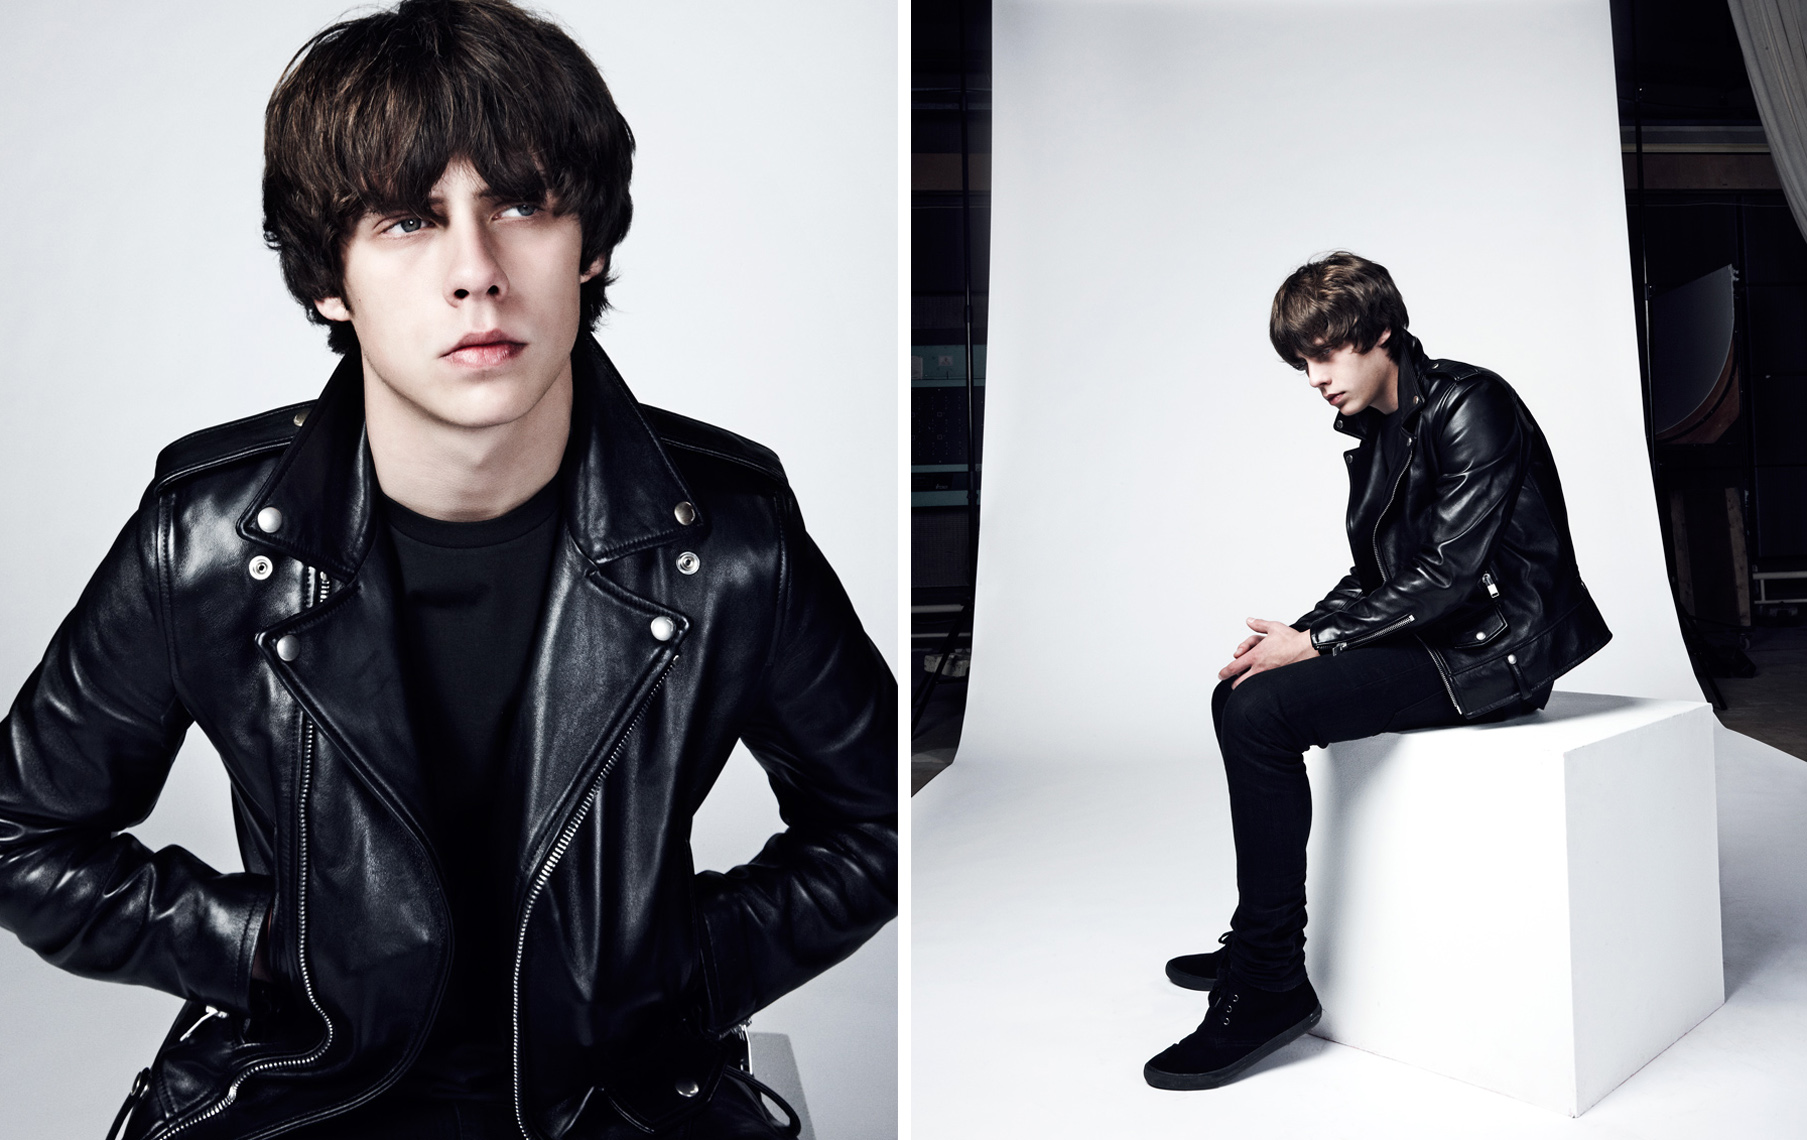 Jake Bugg Portrait NME cover